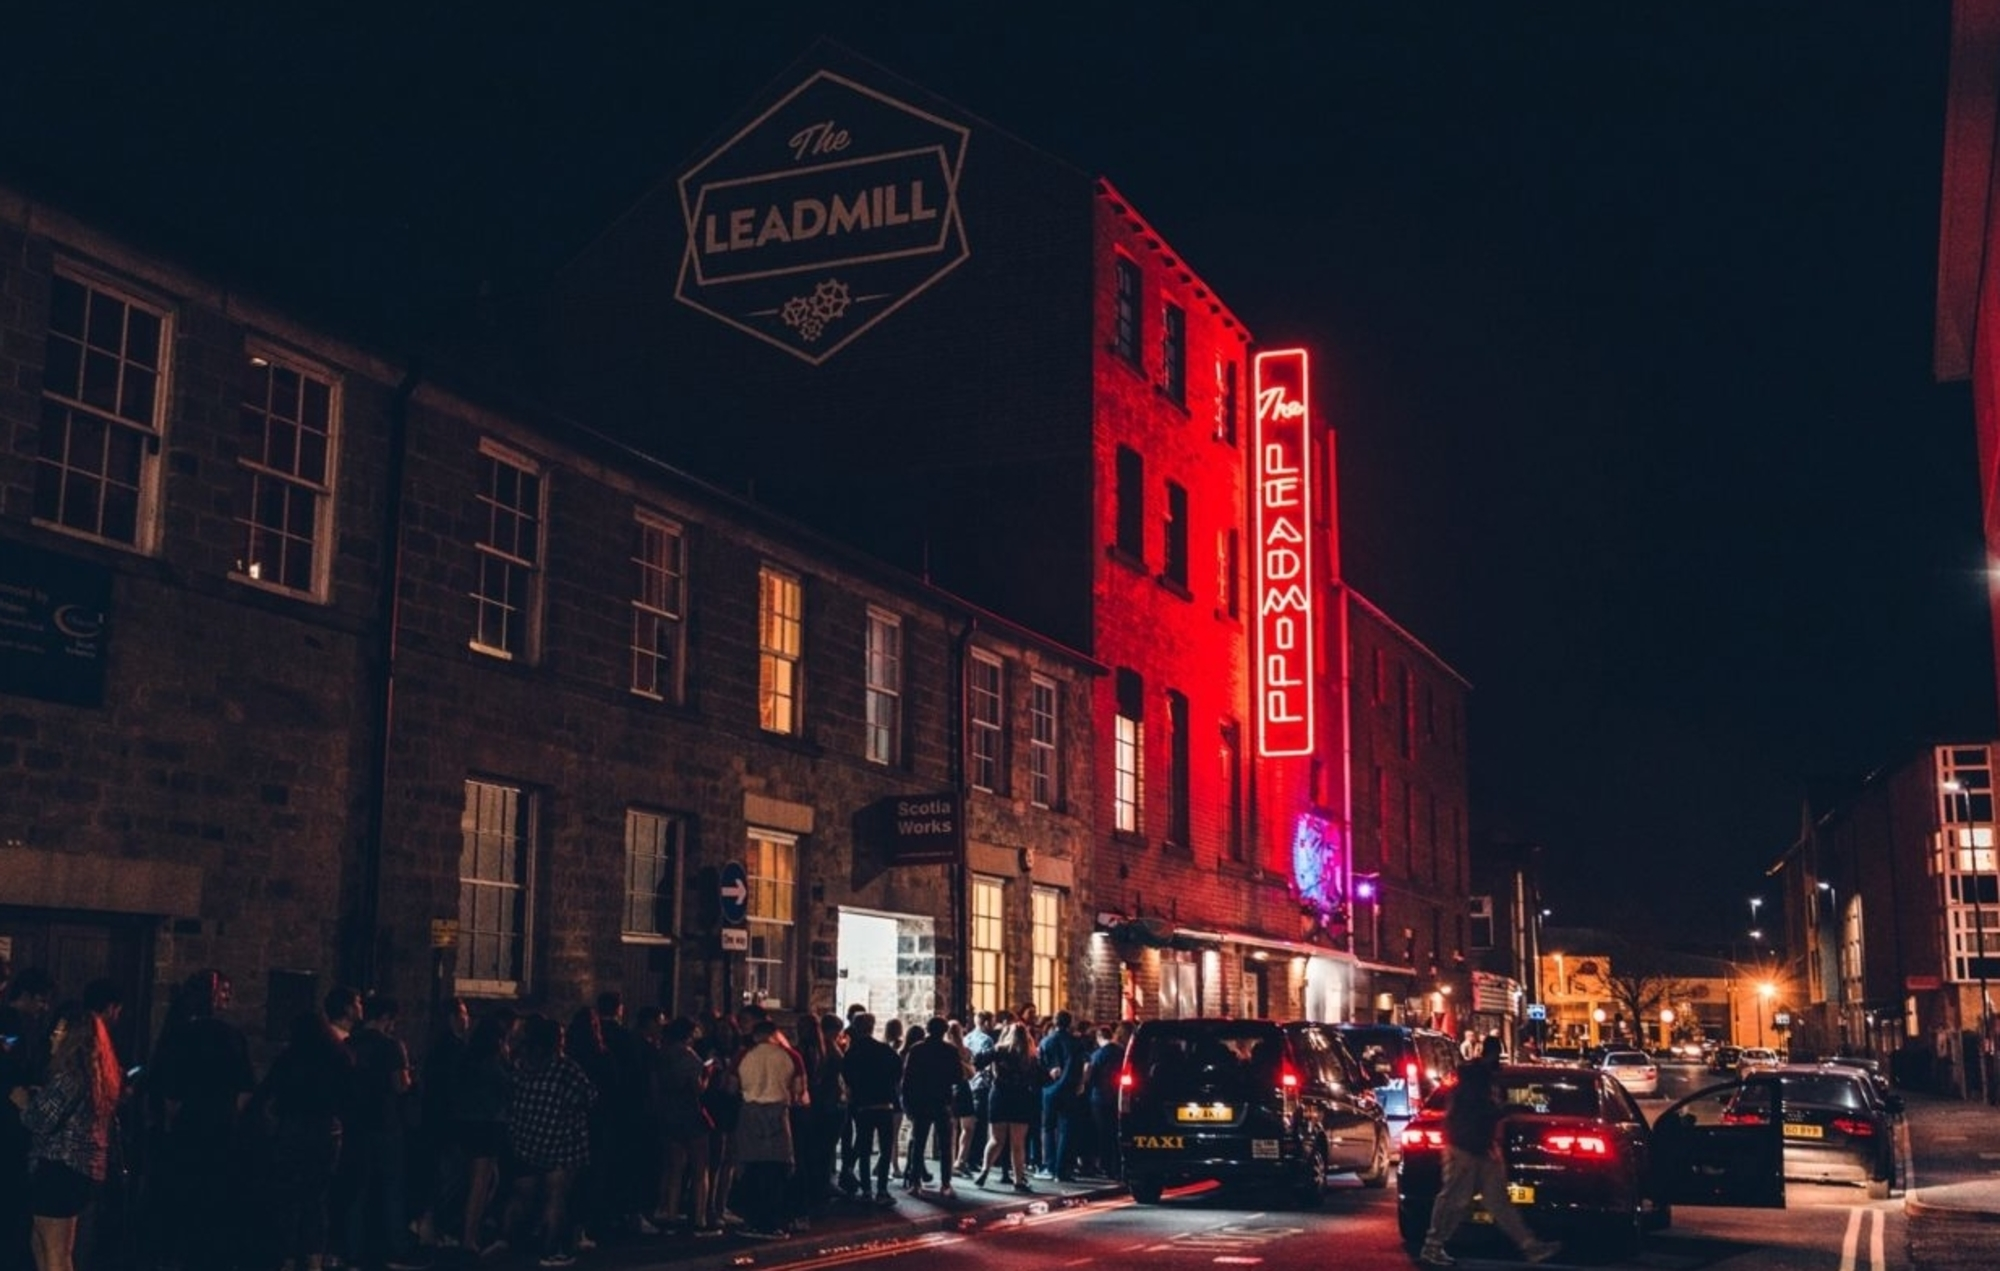 The Sheffield Leadmill is auctioning off memorabilia to help staff affected by coronavirus crisis - EpicNews